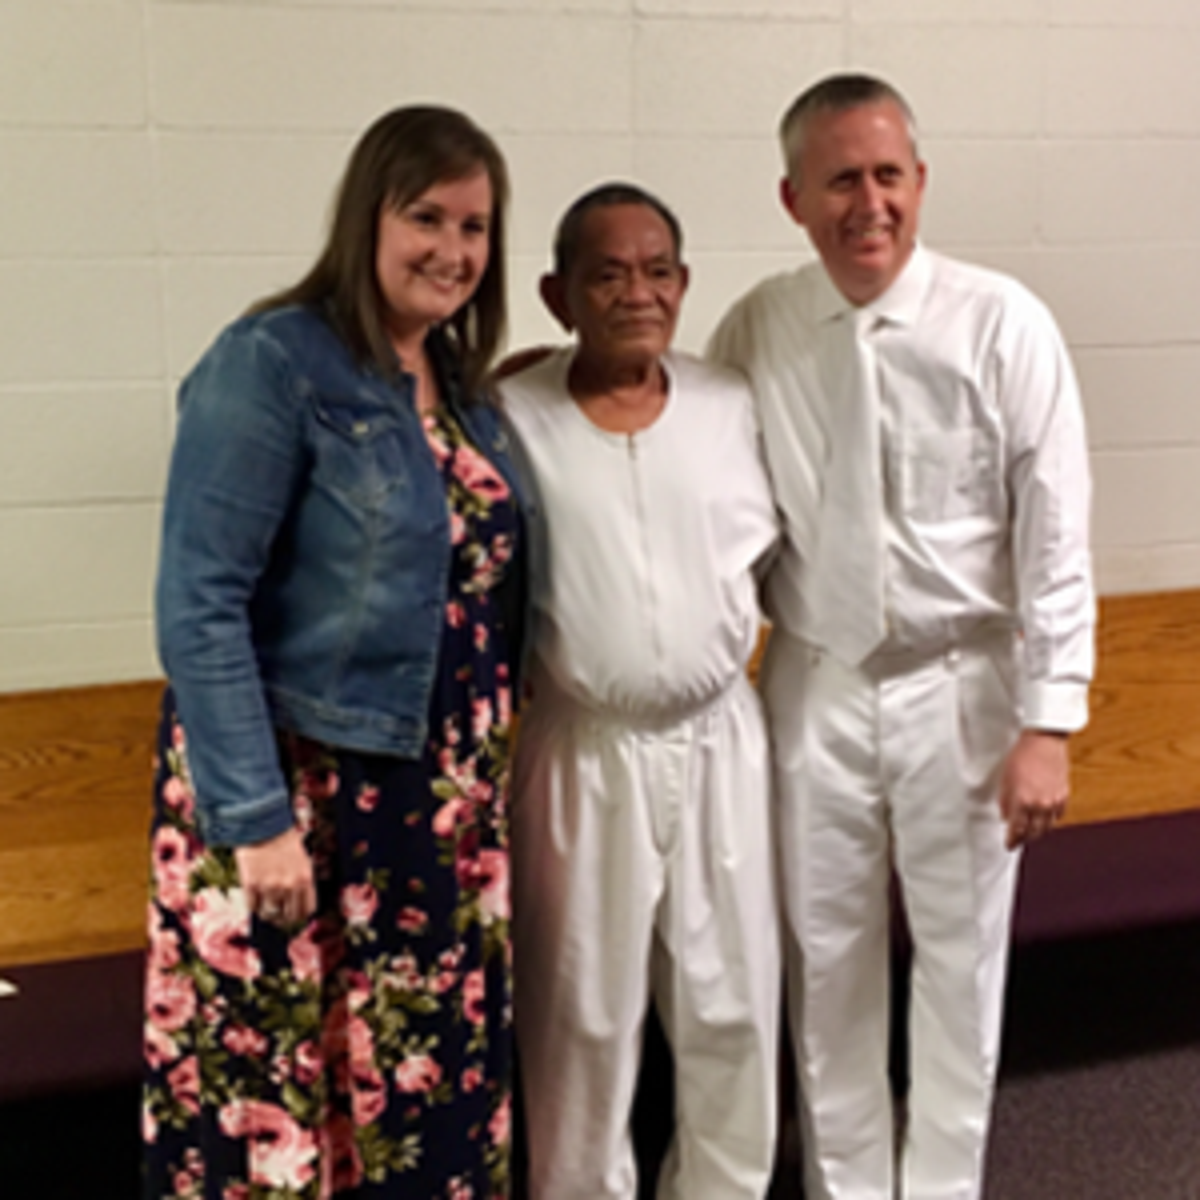 Rolly and his family at his baptism